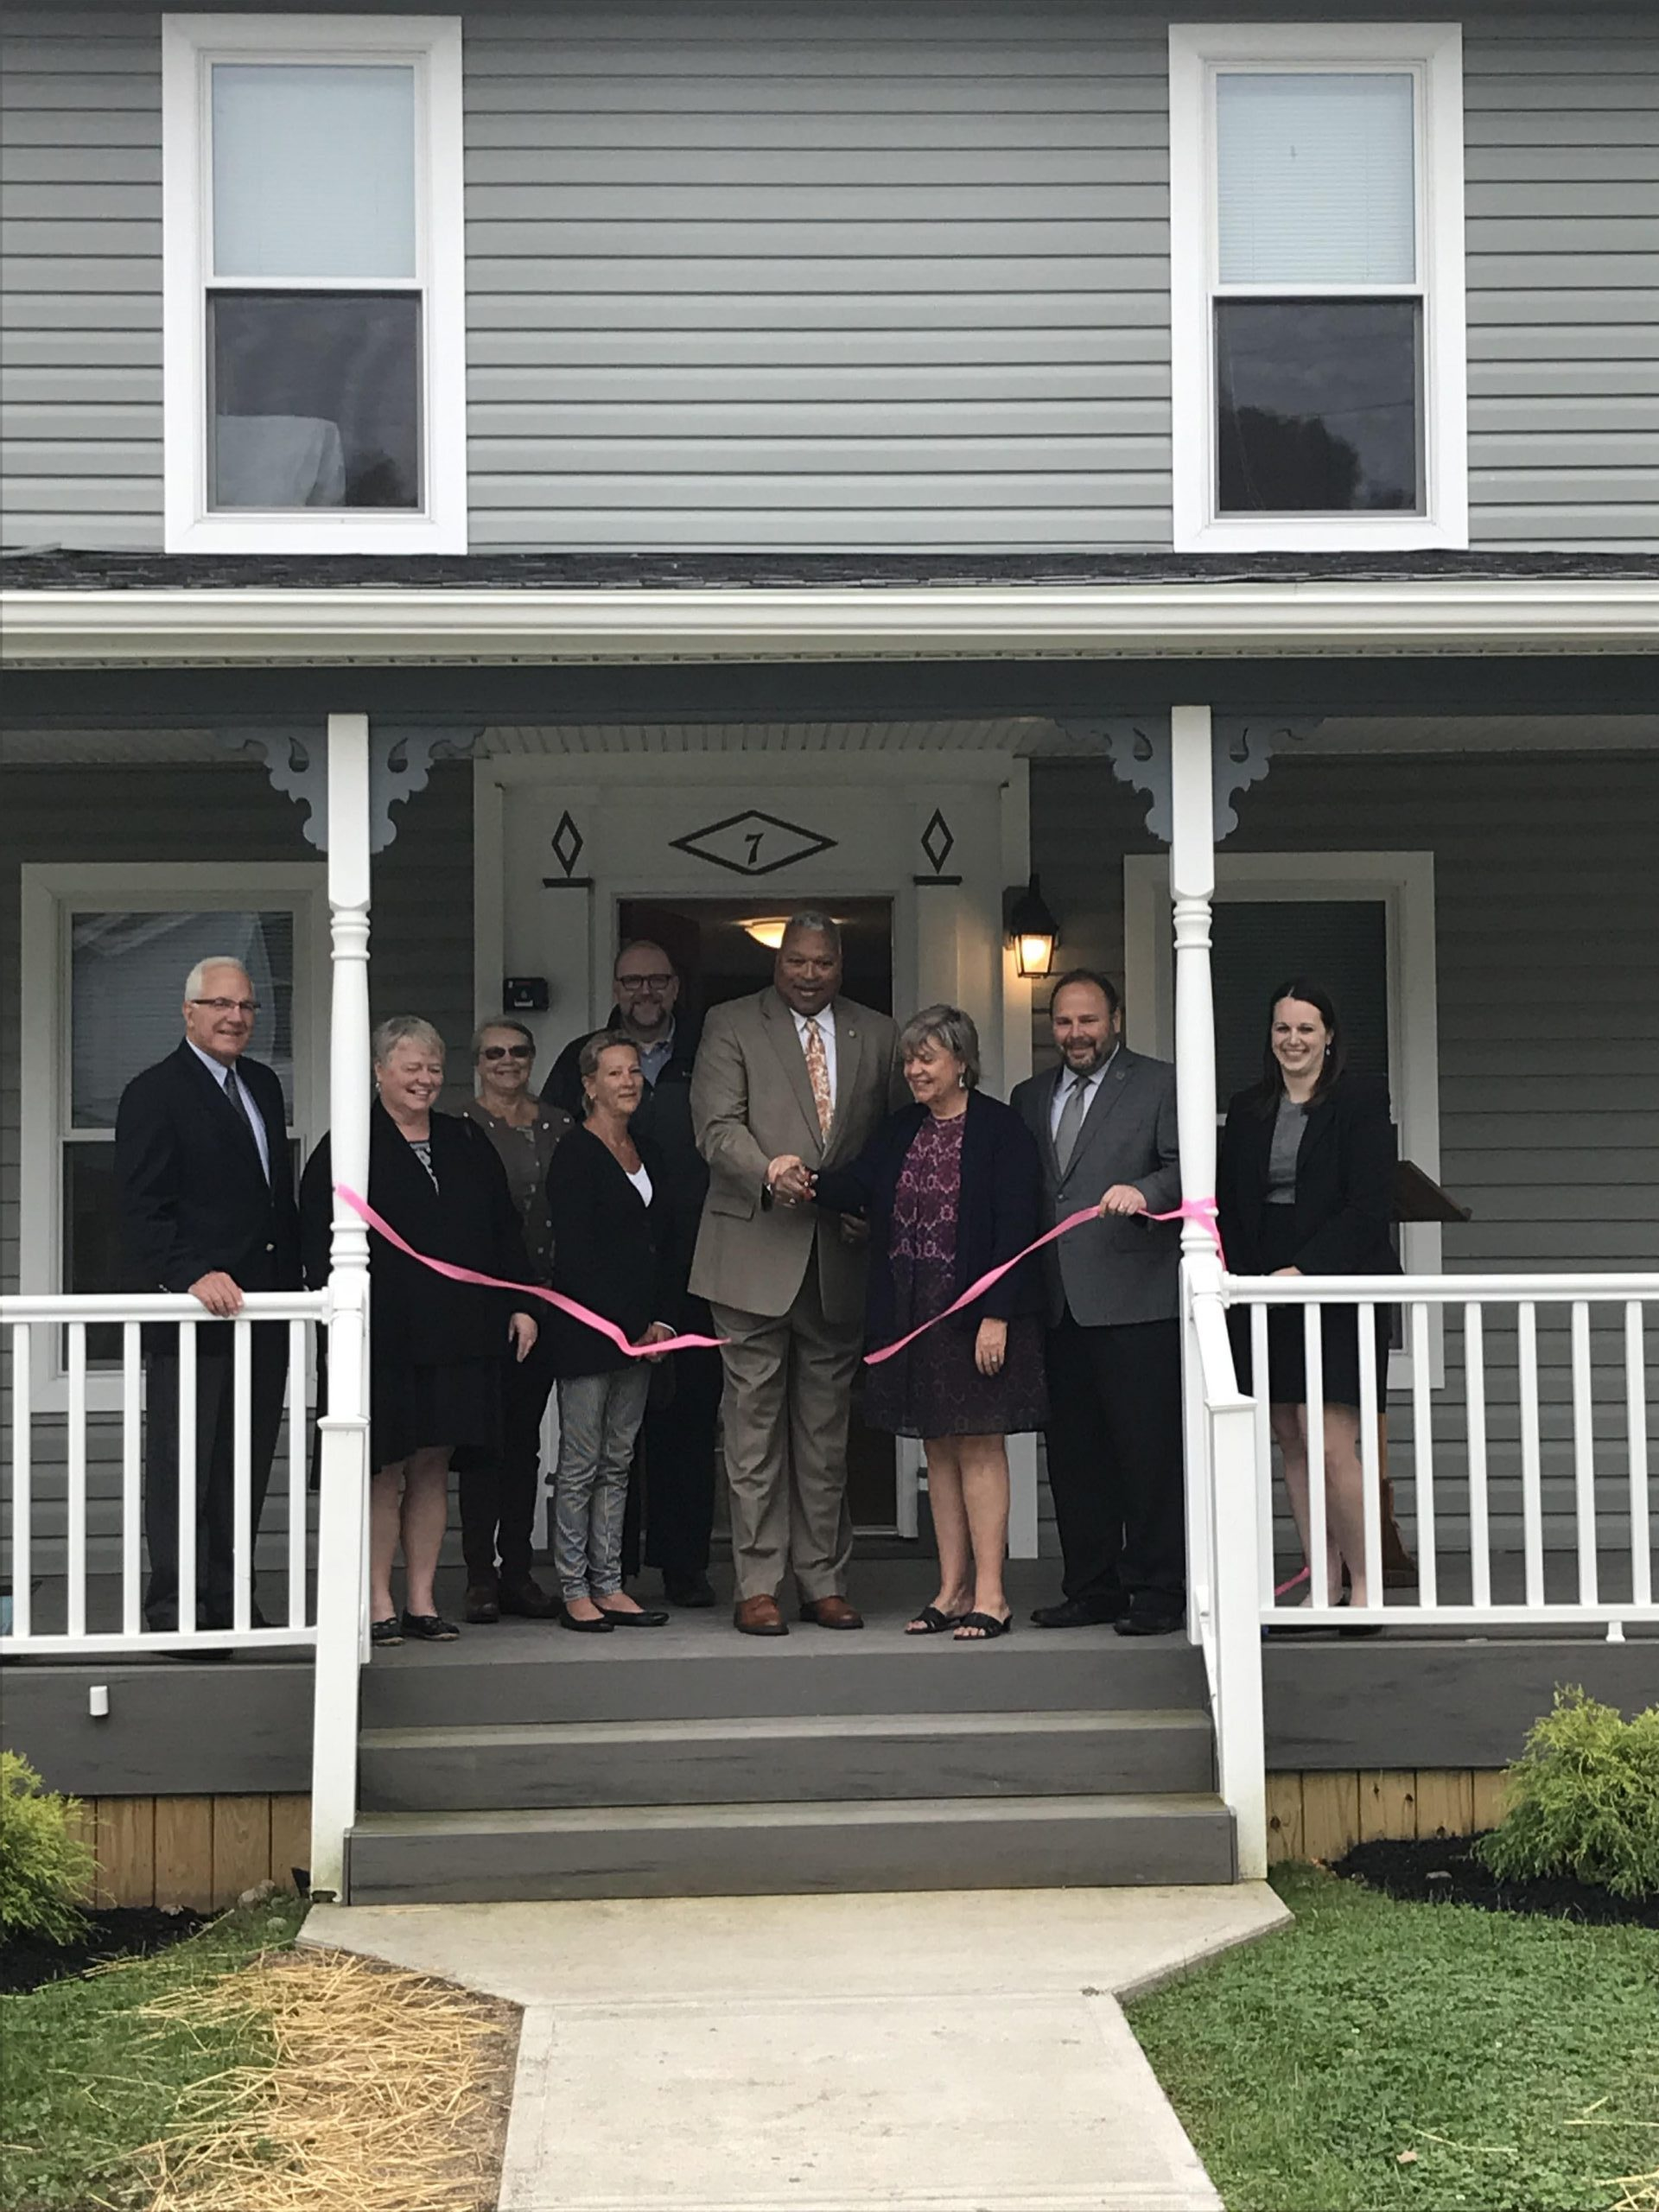 Supportive Housing Opens in Yates County